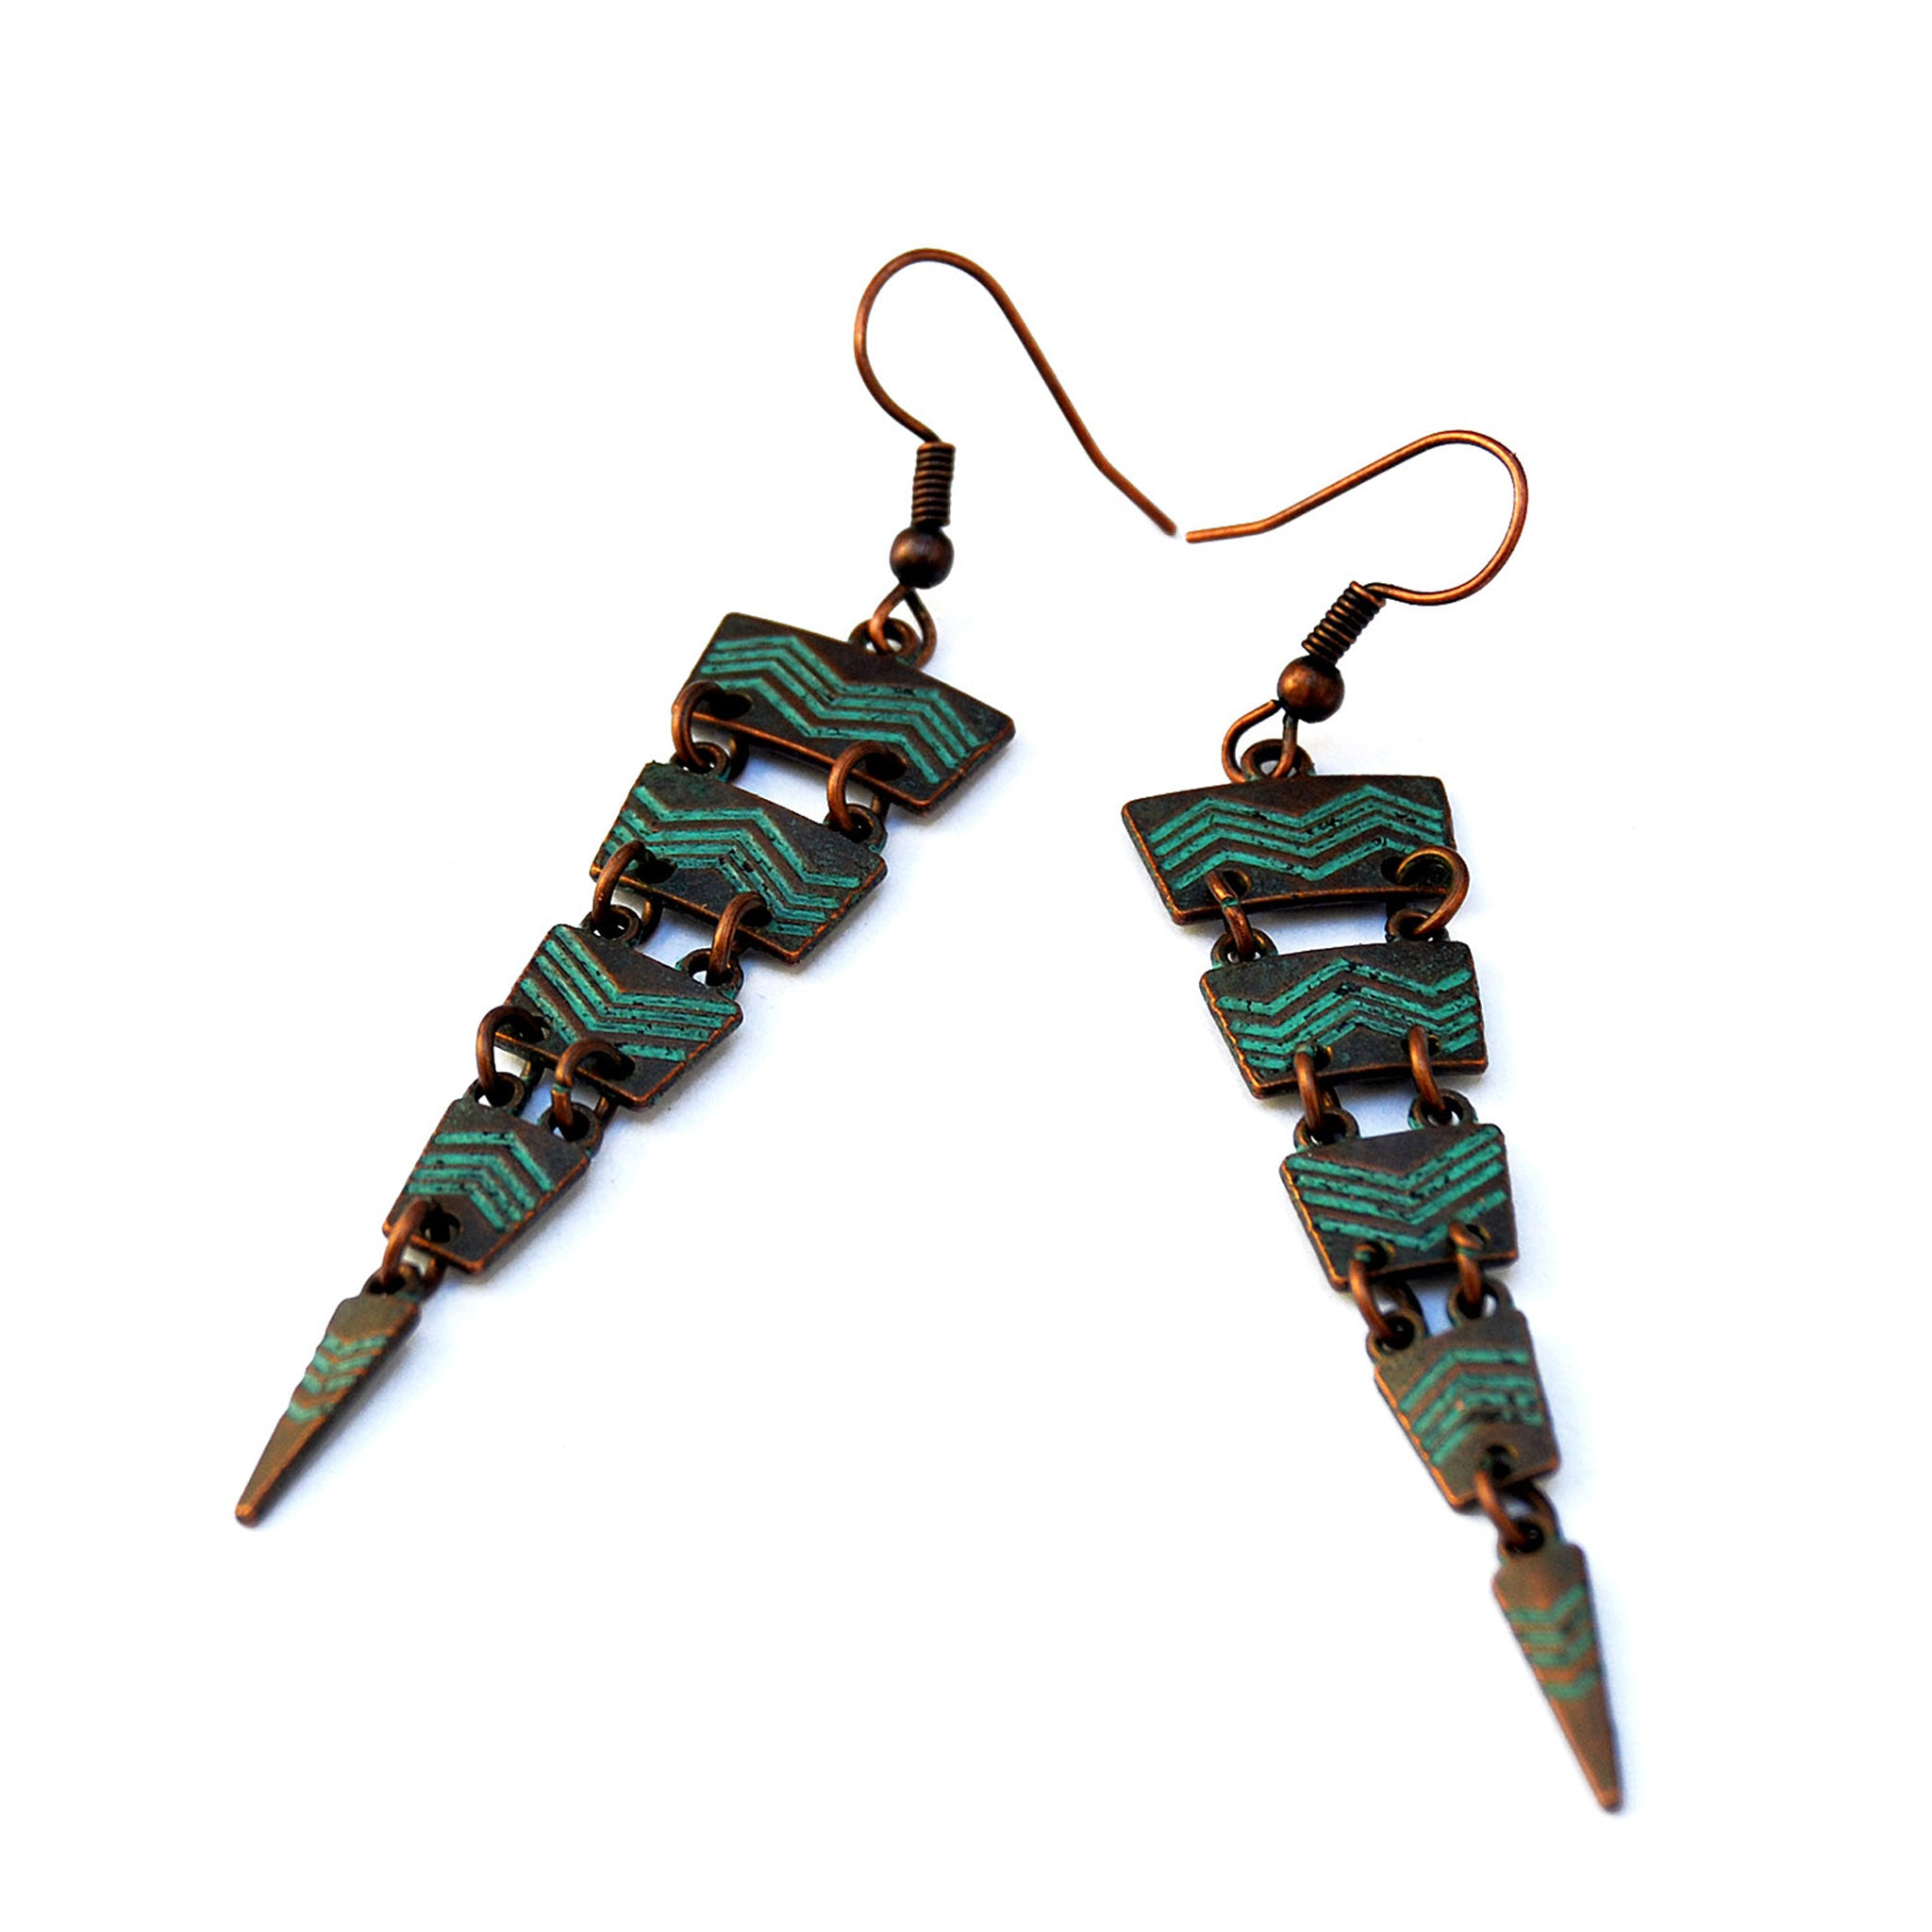 Verdigris patina earrings